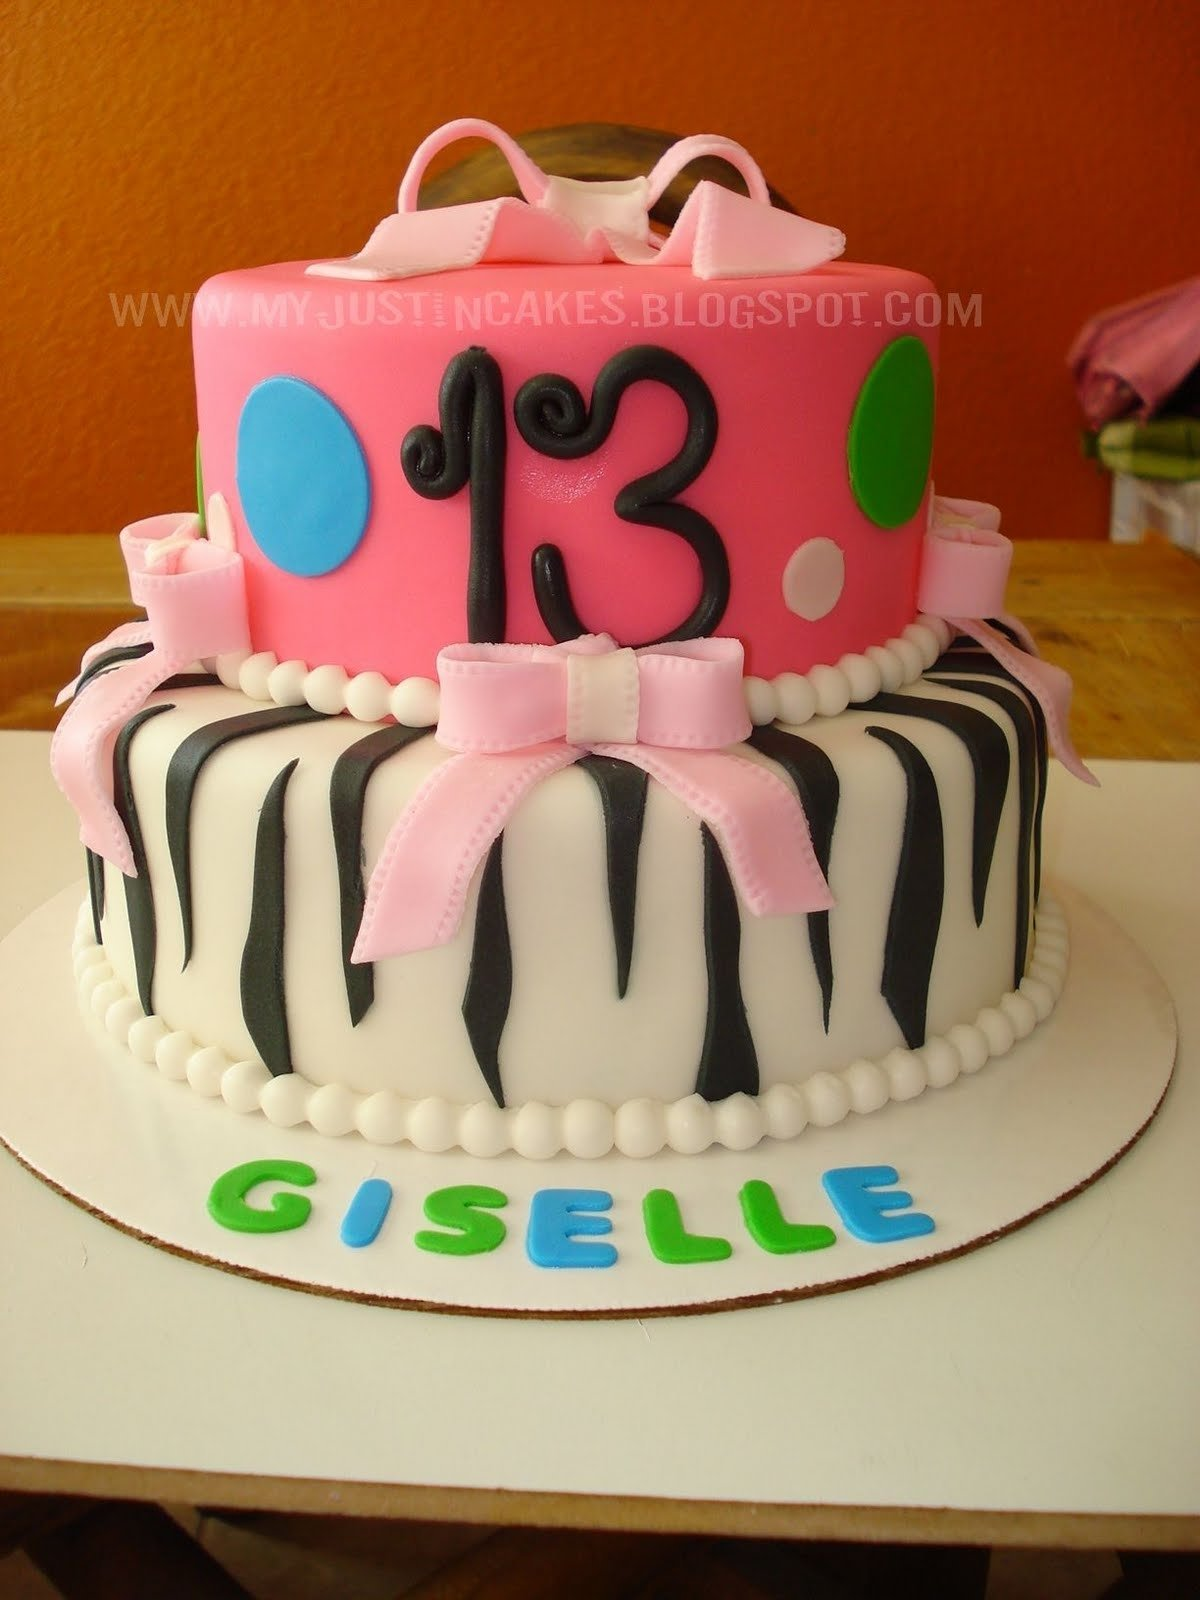 10 Nice 13 Year Old Birthday Party Ideas For Girls 5 Girl